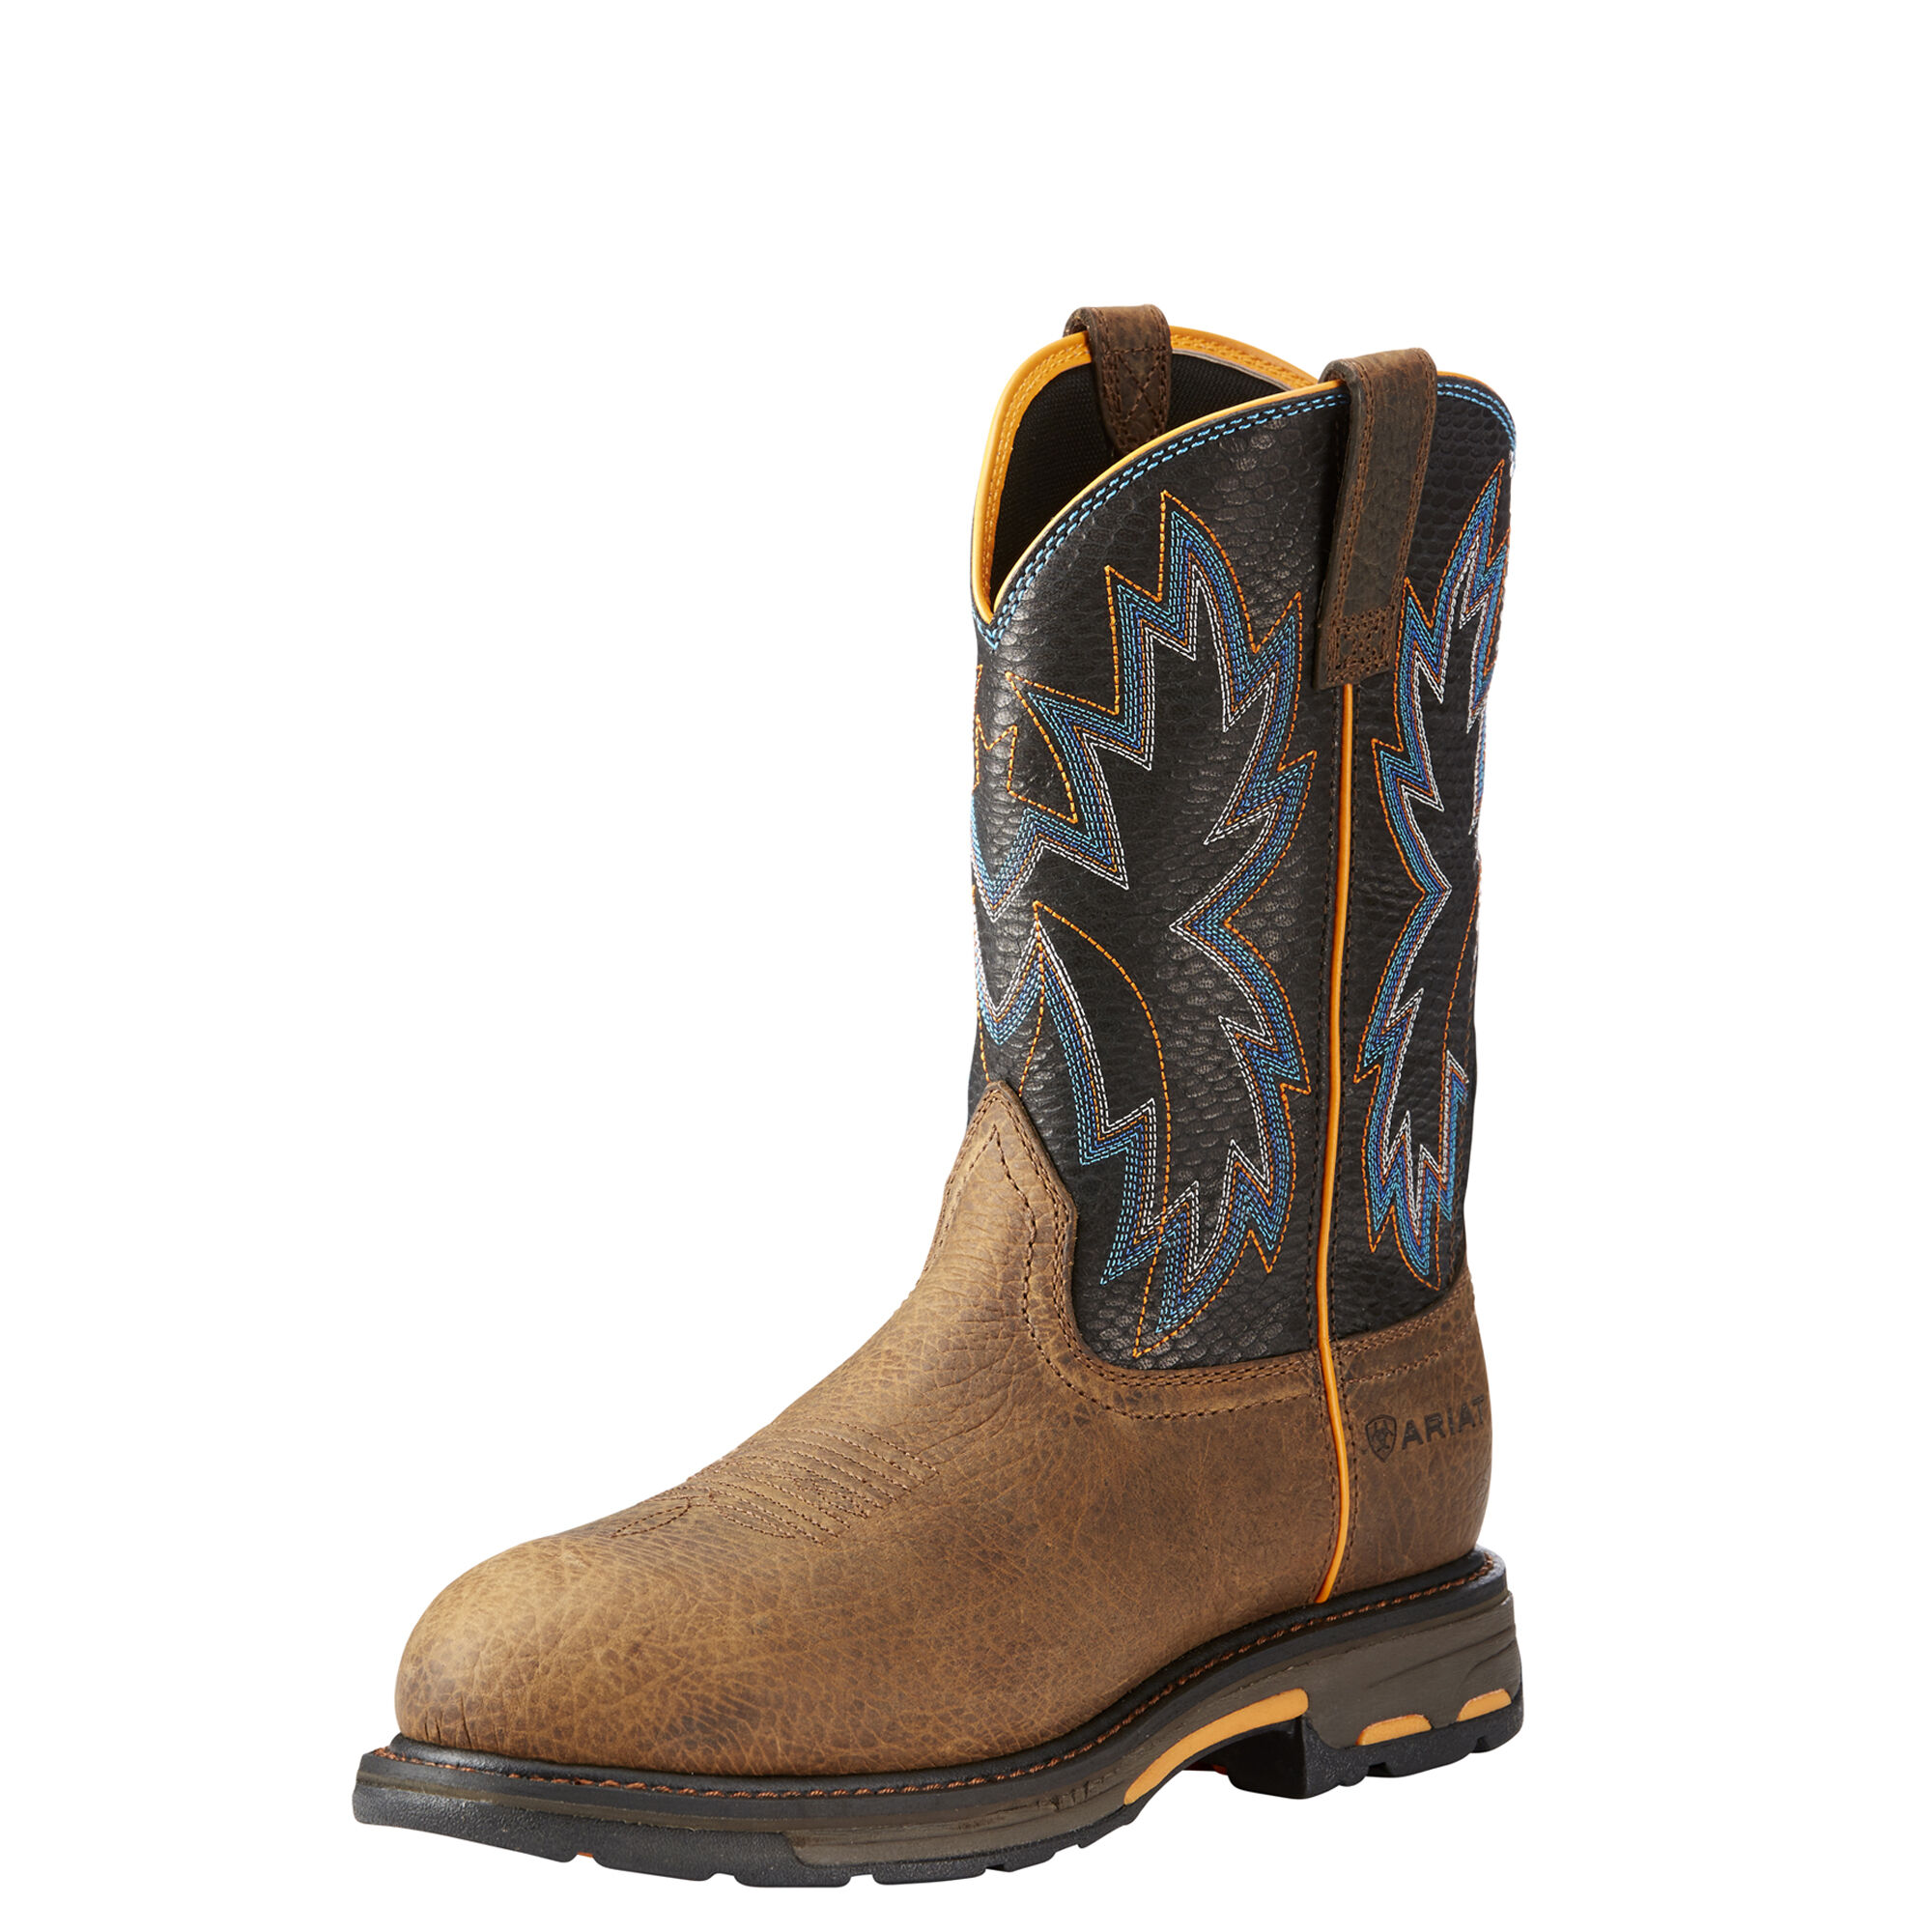 Men's Ariat Workhog Raptor Work Boot, Size: 9 2E, Earth Leather